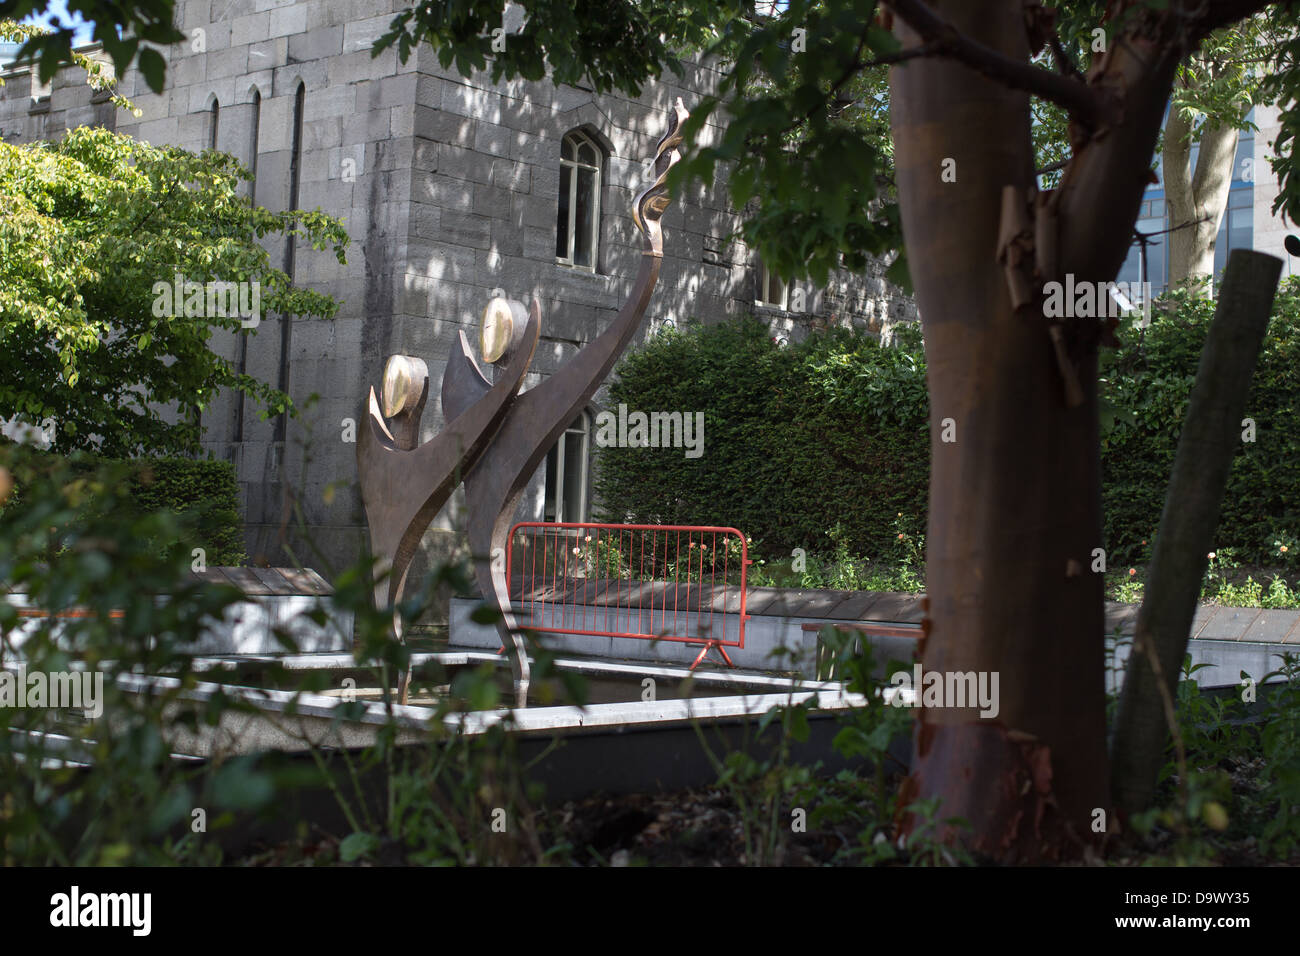 Special Olympics World Games sculpture, Chester Beatty Library, Dublin, Ireland. - Stock Image